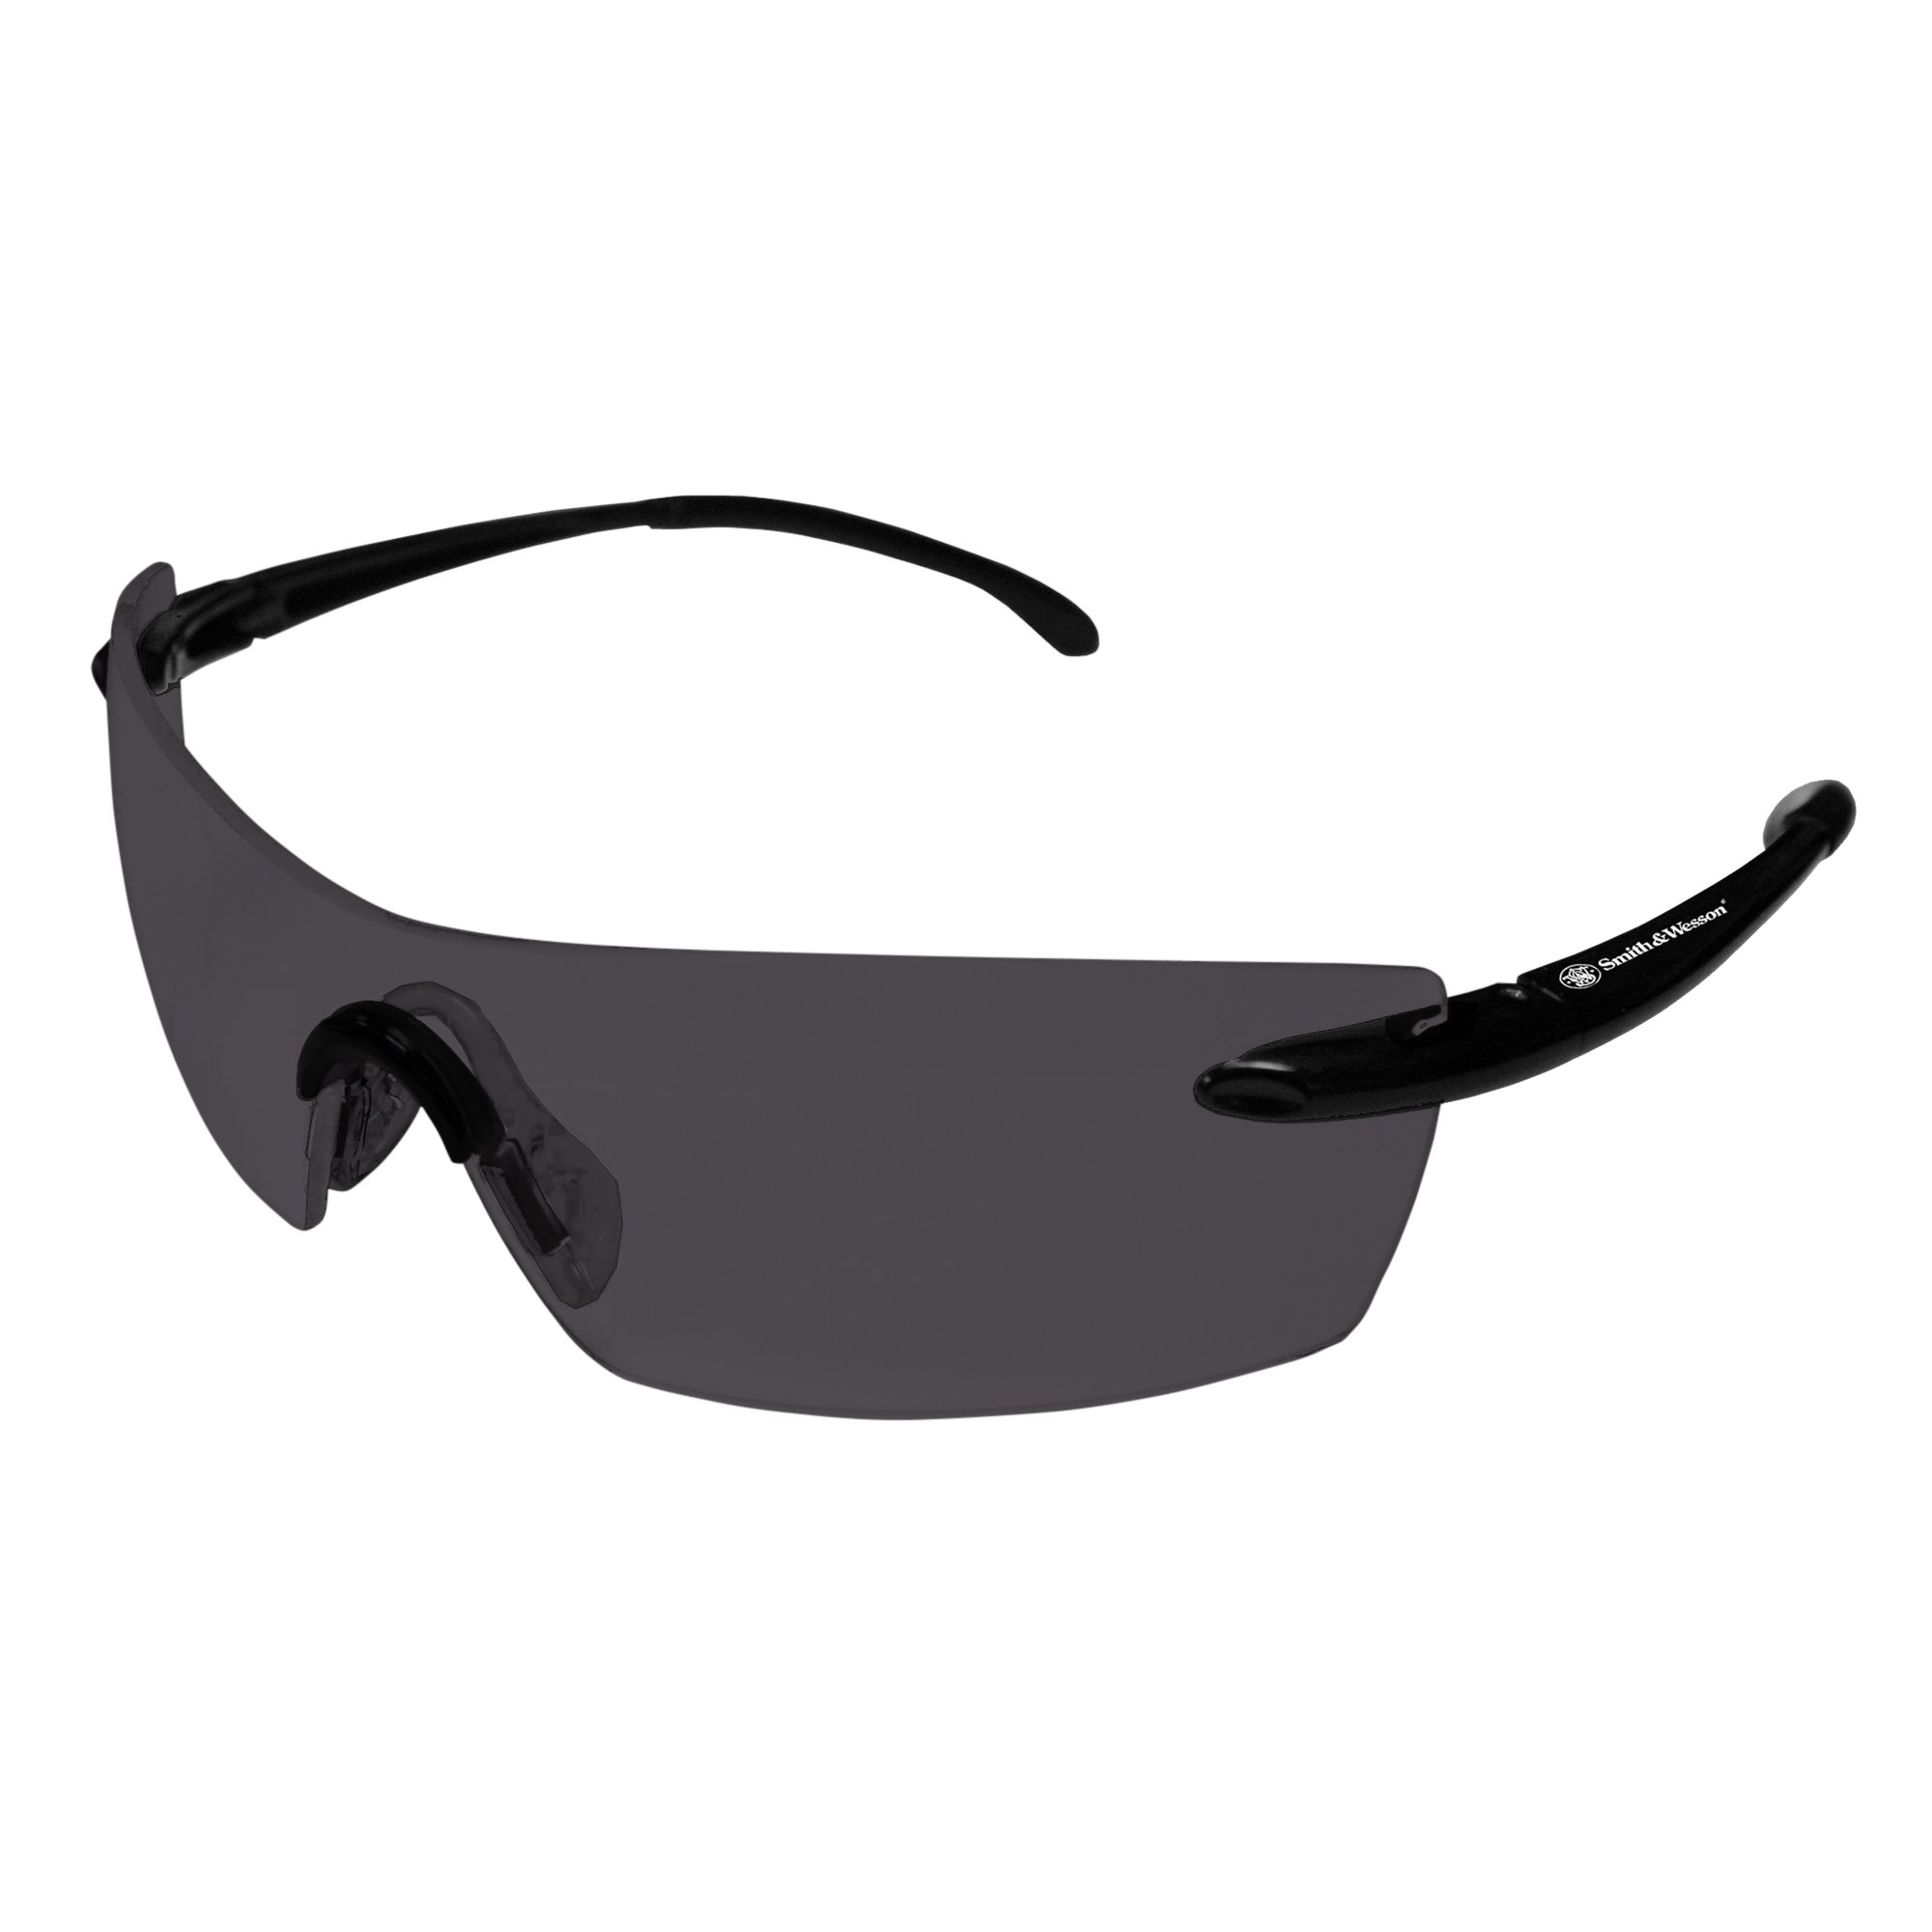 Smith & Wesson Caliber Safety Glasses (23007), Black Frame, Smoke Anti-Fog Lens, 12 Pairs/Case by Jackson Safety